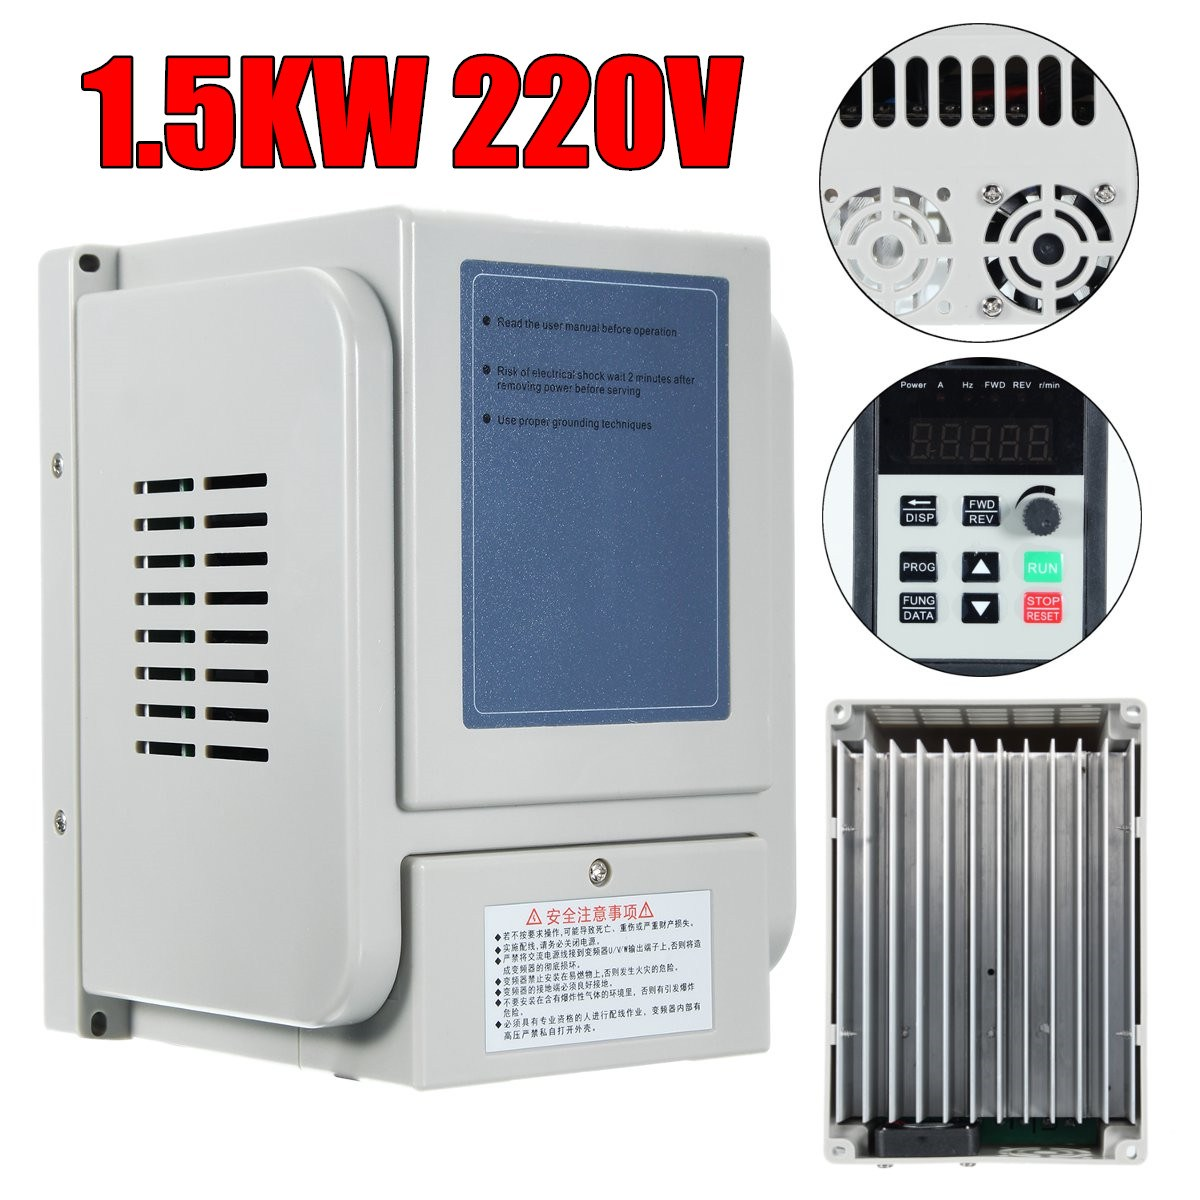 1.5KW 2HP 8A 220V AC Single Phase Variable Frequency Drive Inverter VFD new variable frequency drive vfd inverter 1 5kw 2hp 220v 7a 1 5kw inverter with potentiometer knob 220v ac